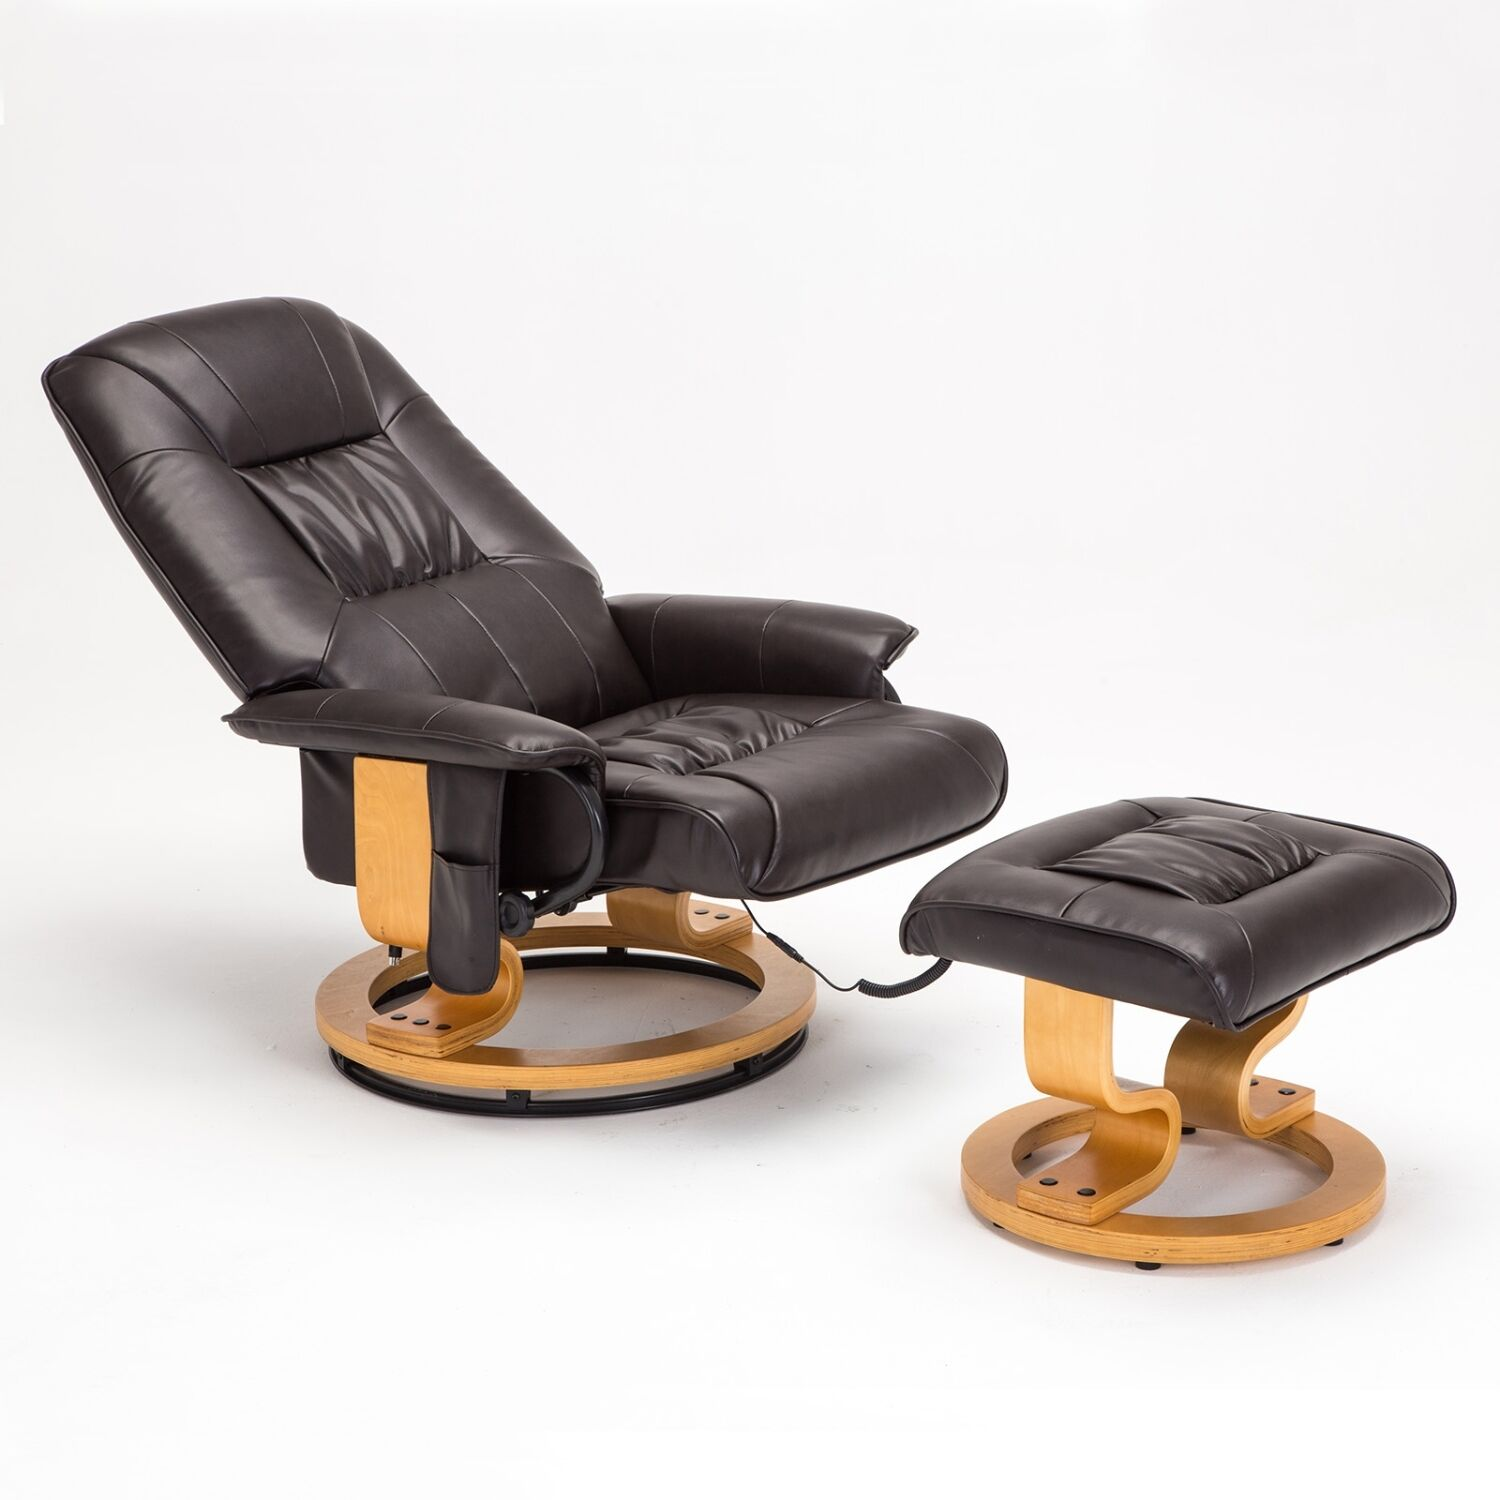 Chair Leather Reclining Swivel Details About Bonded Leather Massage Chair Leisure Recliner Swivel Armchair W Ottoman Brown